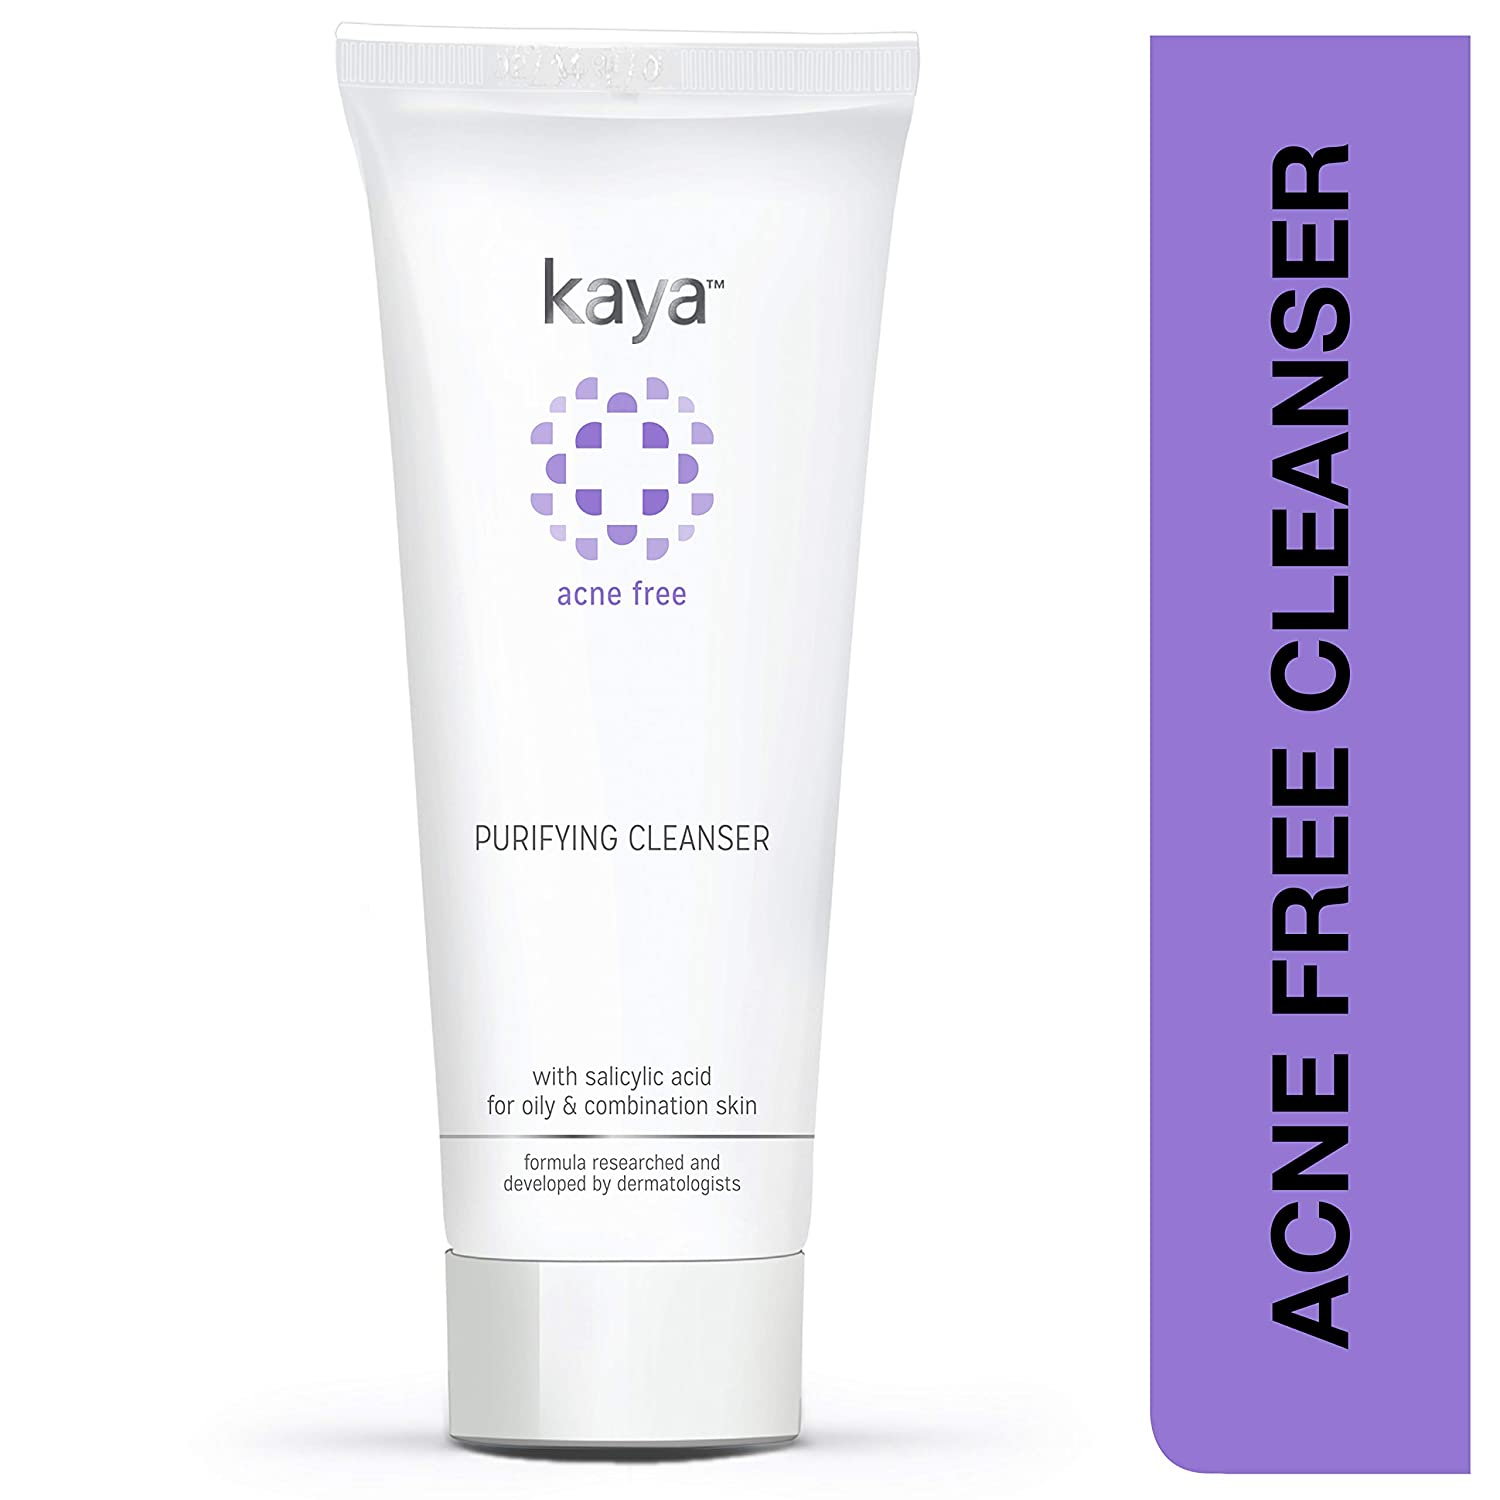 Kaya Clinic Purifying Cleanser, Salicylic Acid enriched face wash for acne-prone & oily skin